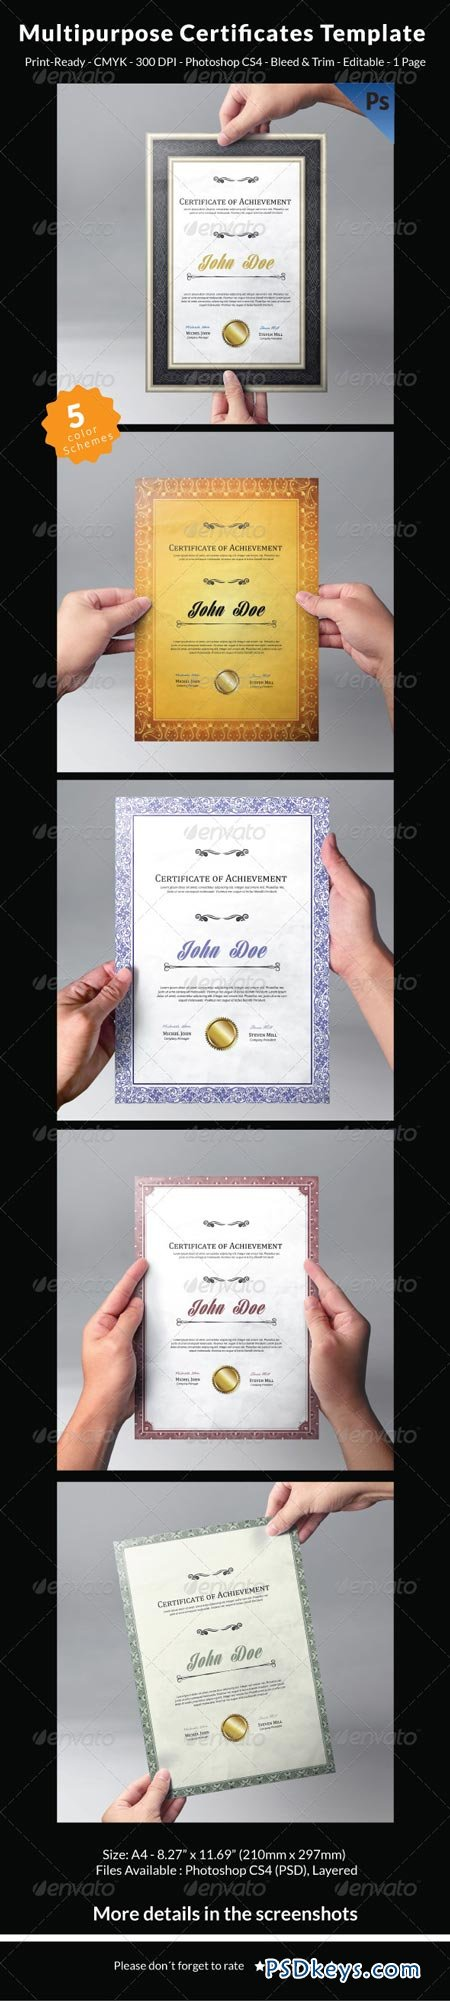 Multipurpose Certificates Template 7251806